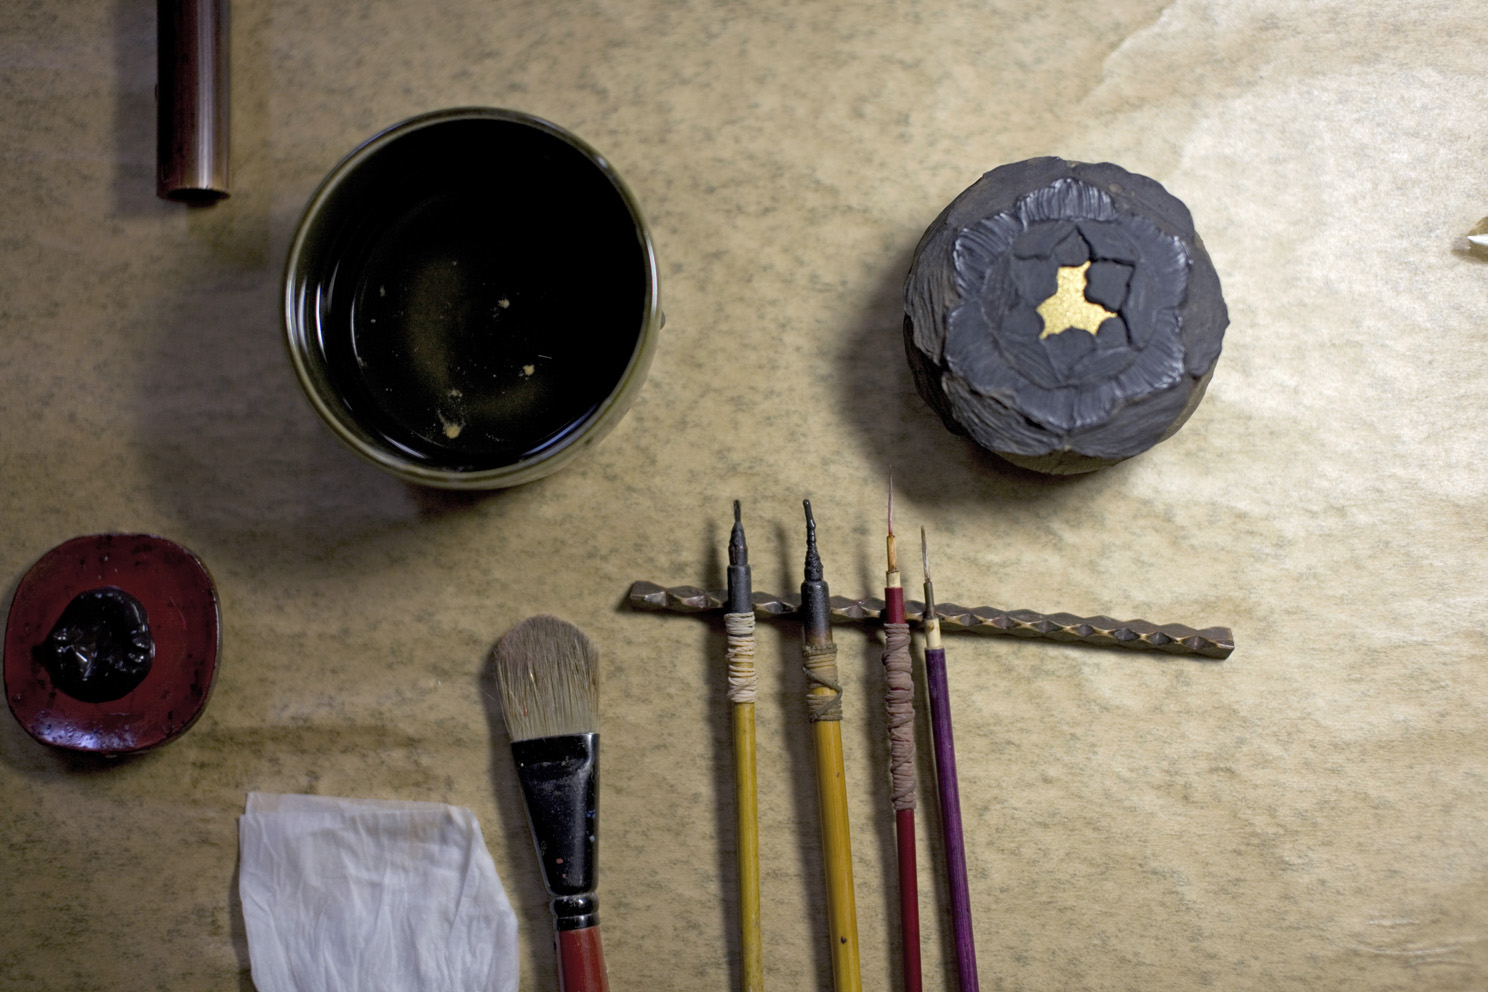 Some of the tools of Mr Ikeda